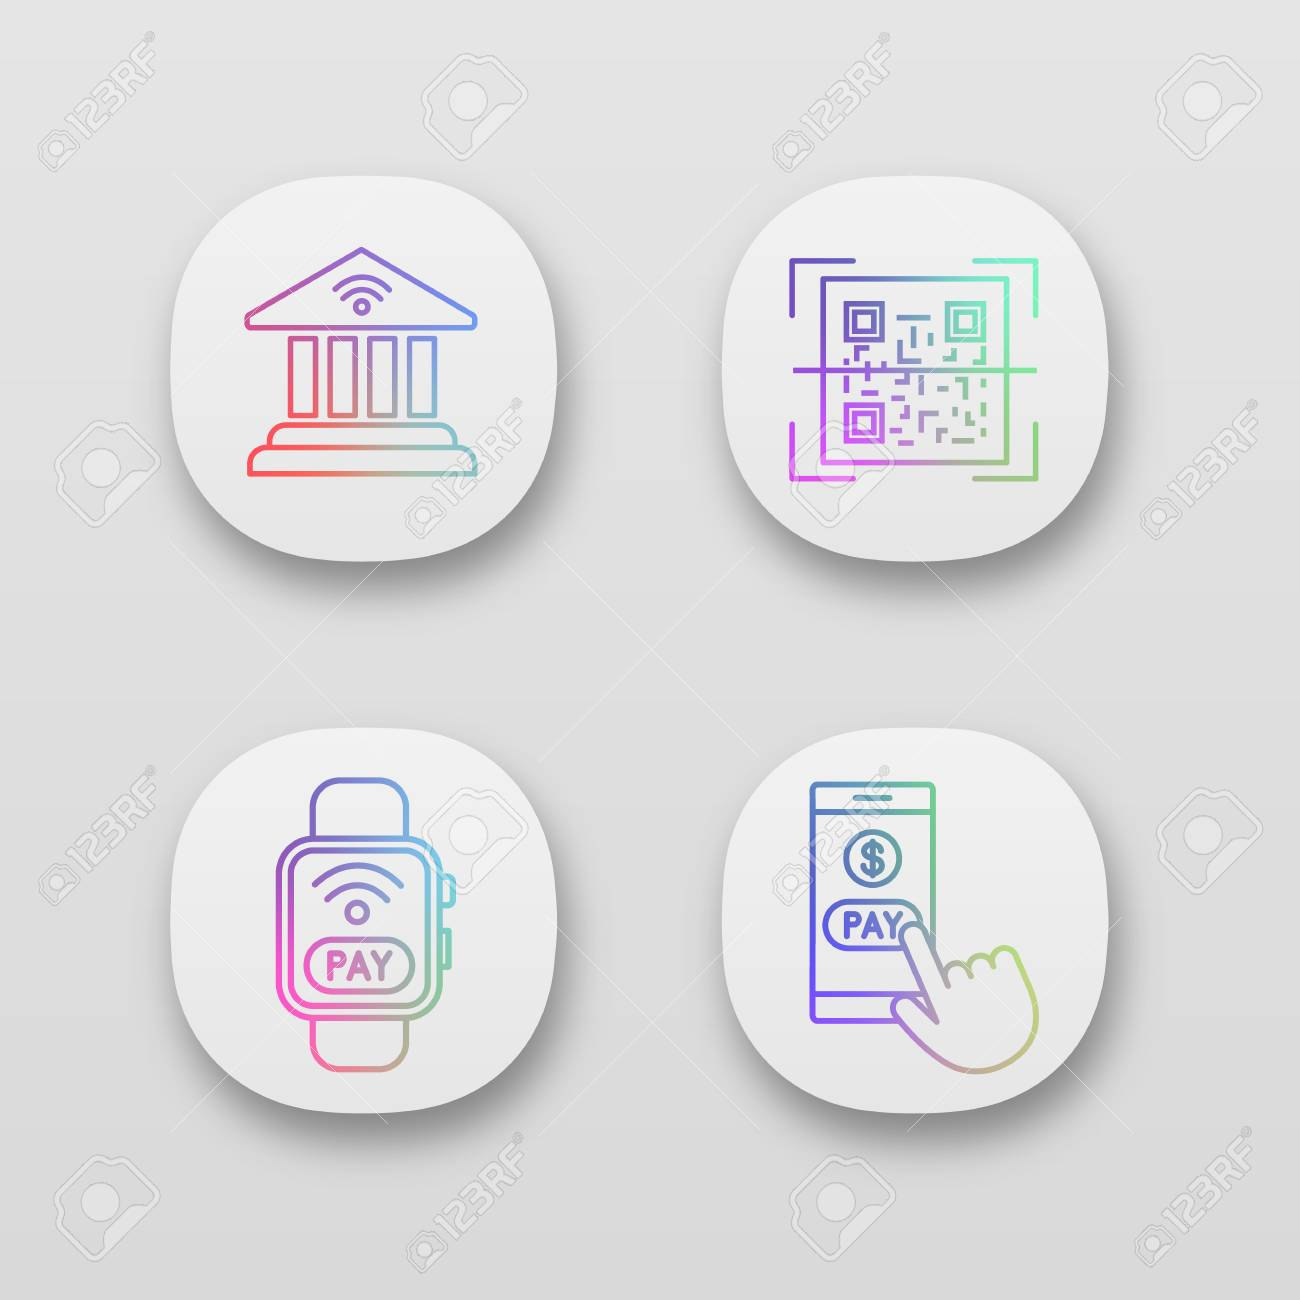 E-payment app icons set  Online banking, QR code scanner, NFC